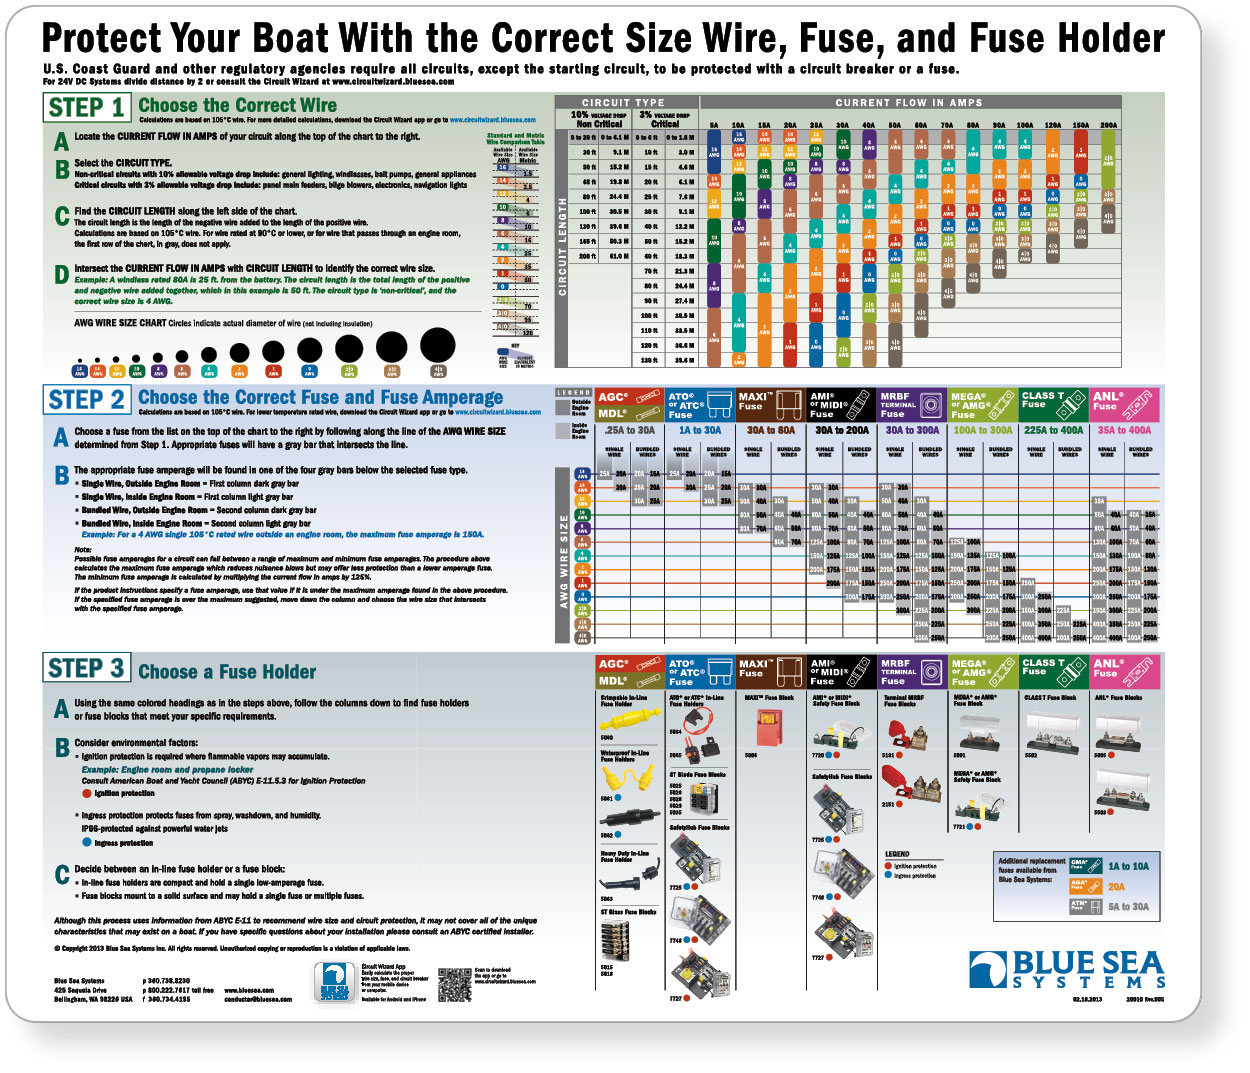 Wire fuse and fuse holder selection chart blue sea systems product image keyboard keysfo Image collections